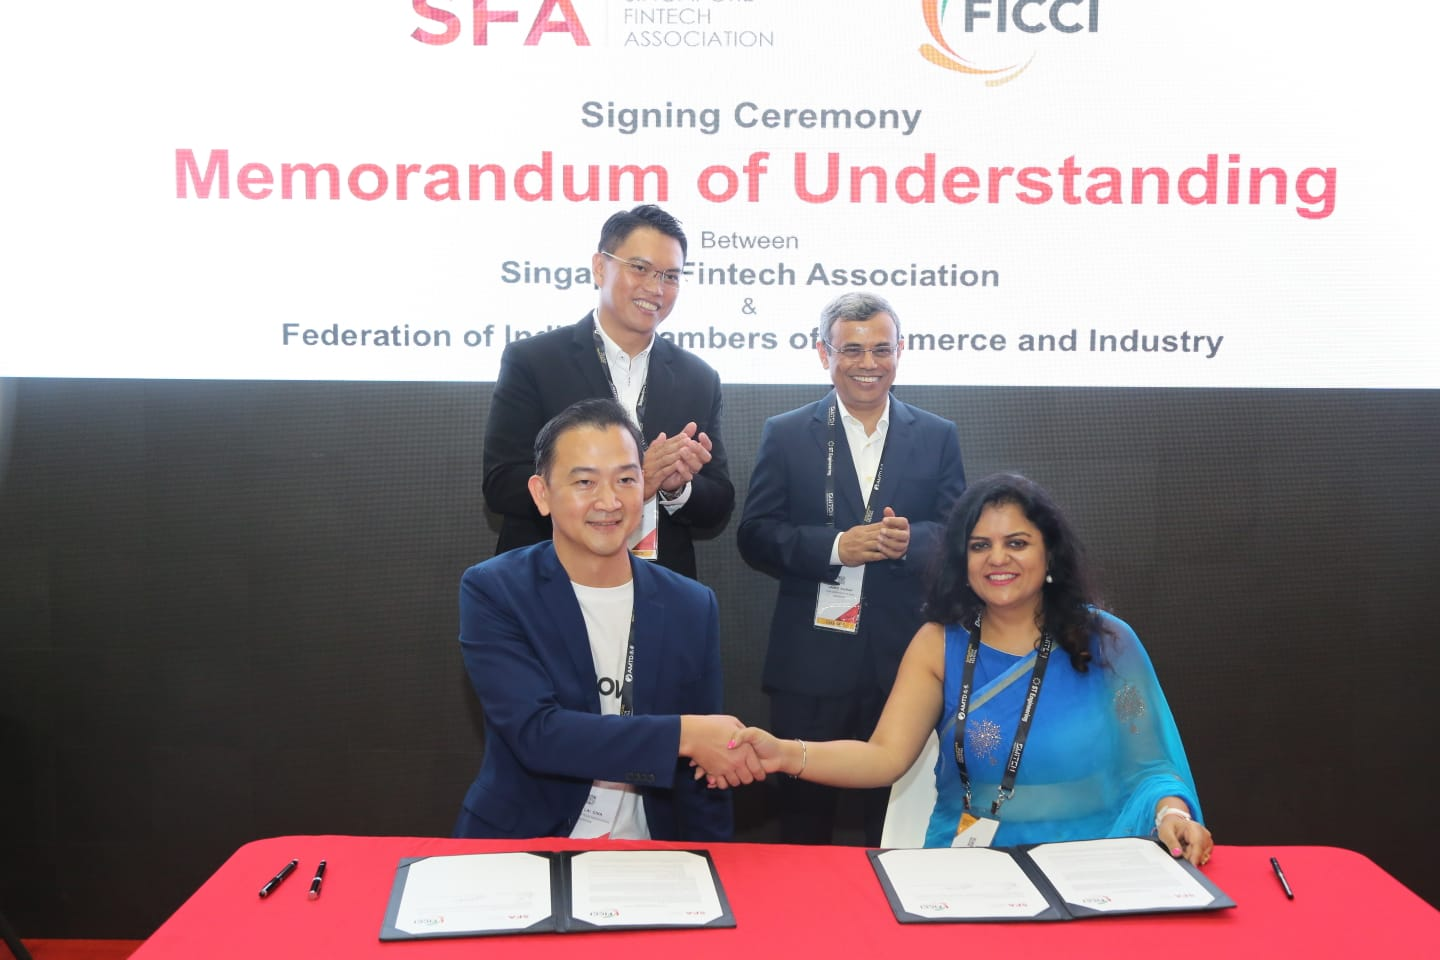 HE Jawed Ashraf, India's High Commissioner to Singapore (2nd row, right) and Patrick Tay, Assistant Secretary General, NTUC and MP, West Coast GRC (2nd row, left) witnessing the MoU signing ceremony between SFA and FICCI at the 4th Singapore FinTech Festival 2019. Navita Myer, Director, FICCI Singapore (1st row, right) and Chia Hock Lai, president, SFA signed the MoUs on behalf of their organisations